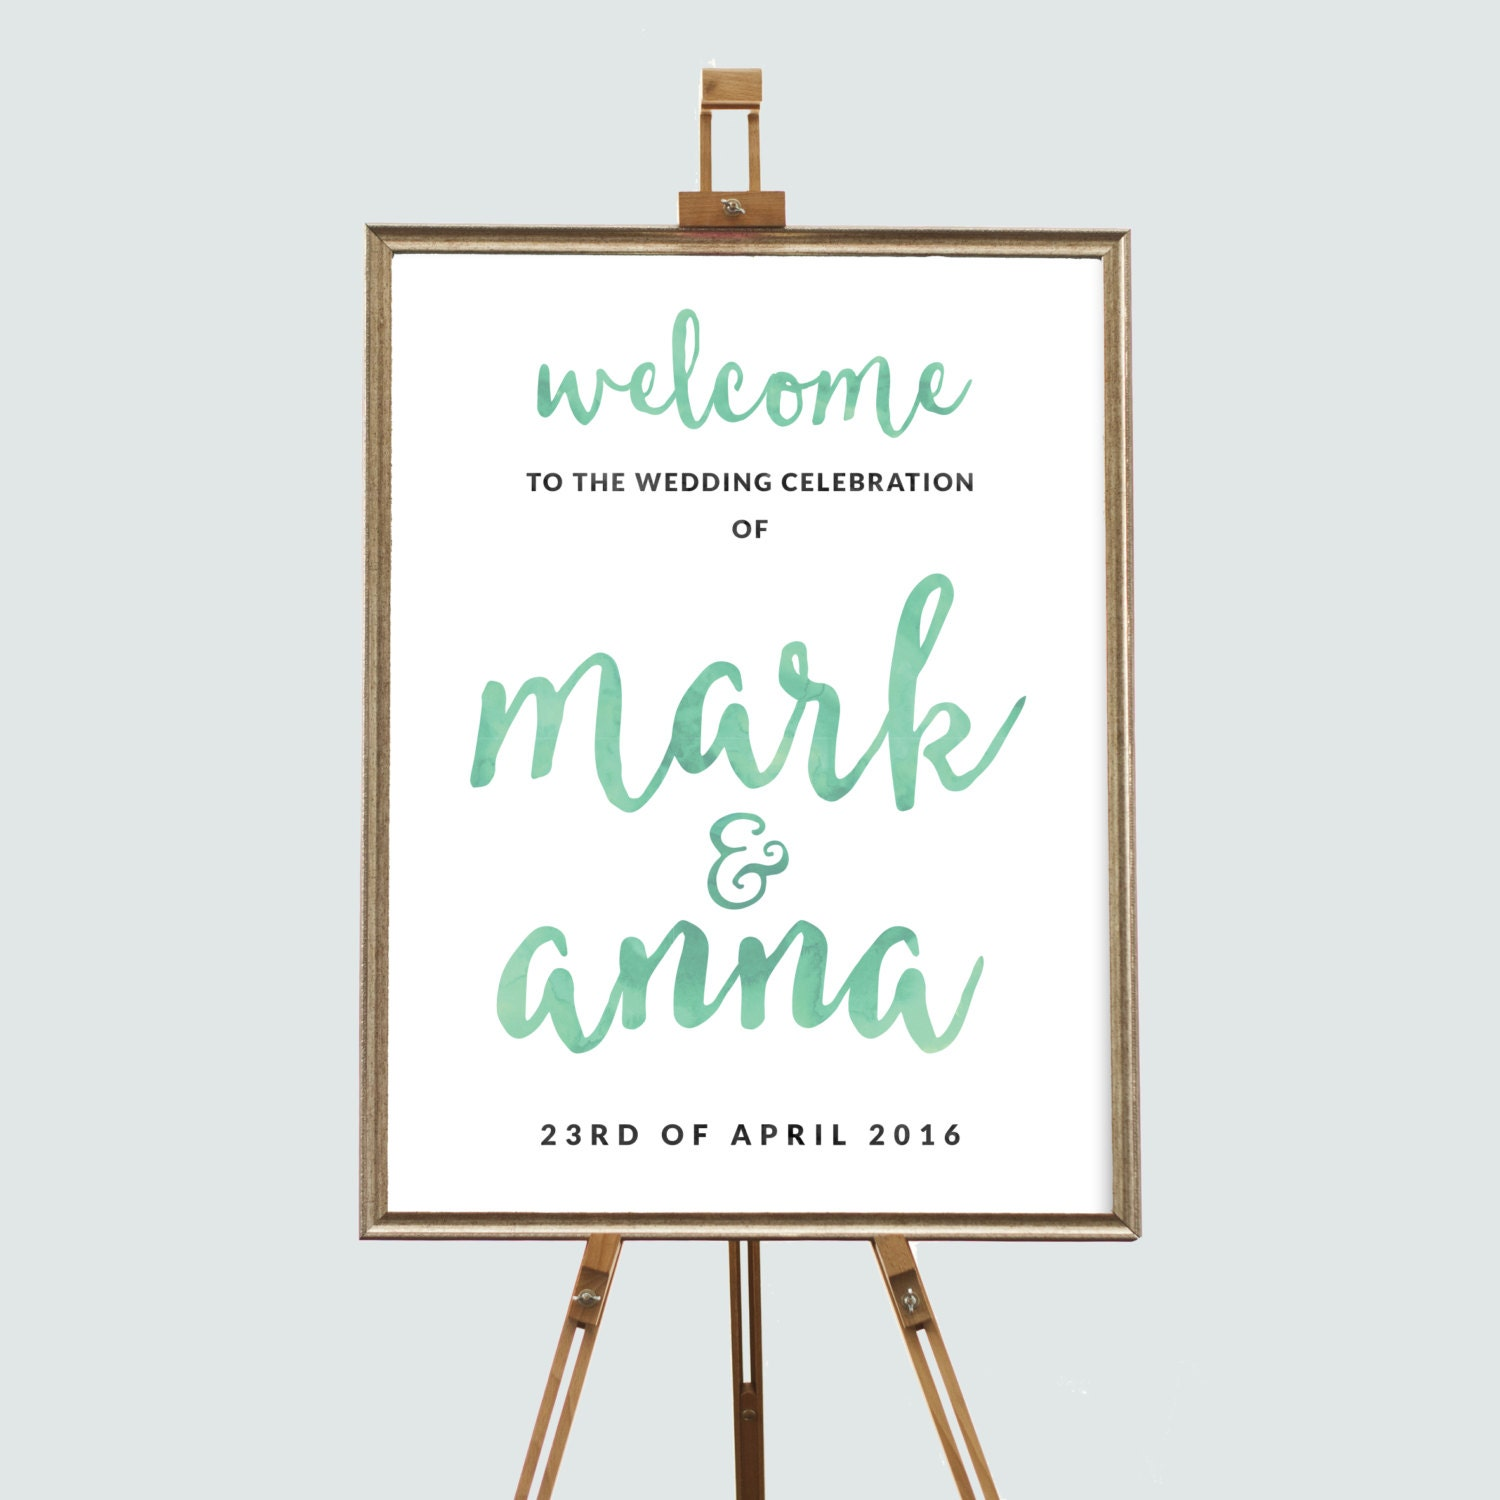 Wedding welcome sign, Wedding ceremony sign, Wedding stationery, Wedding ceremony decor, Welcome sign wedding, Wedding signs printable